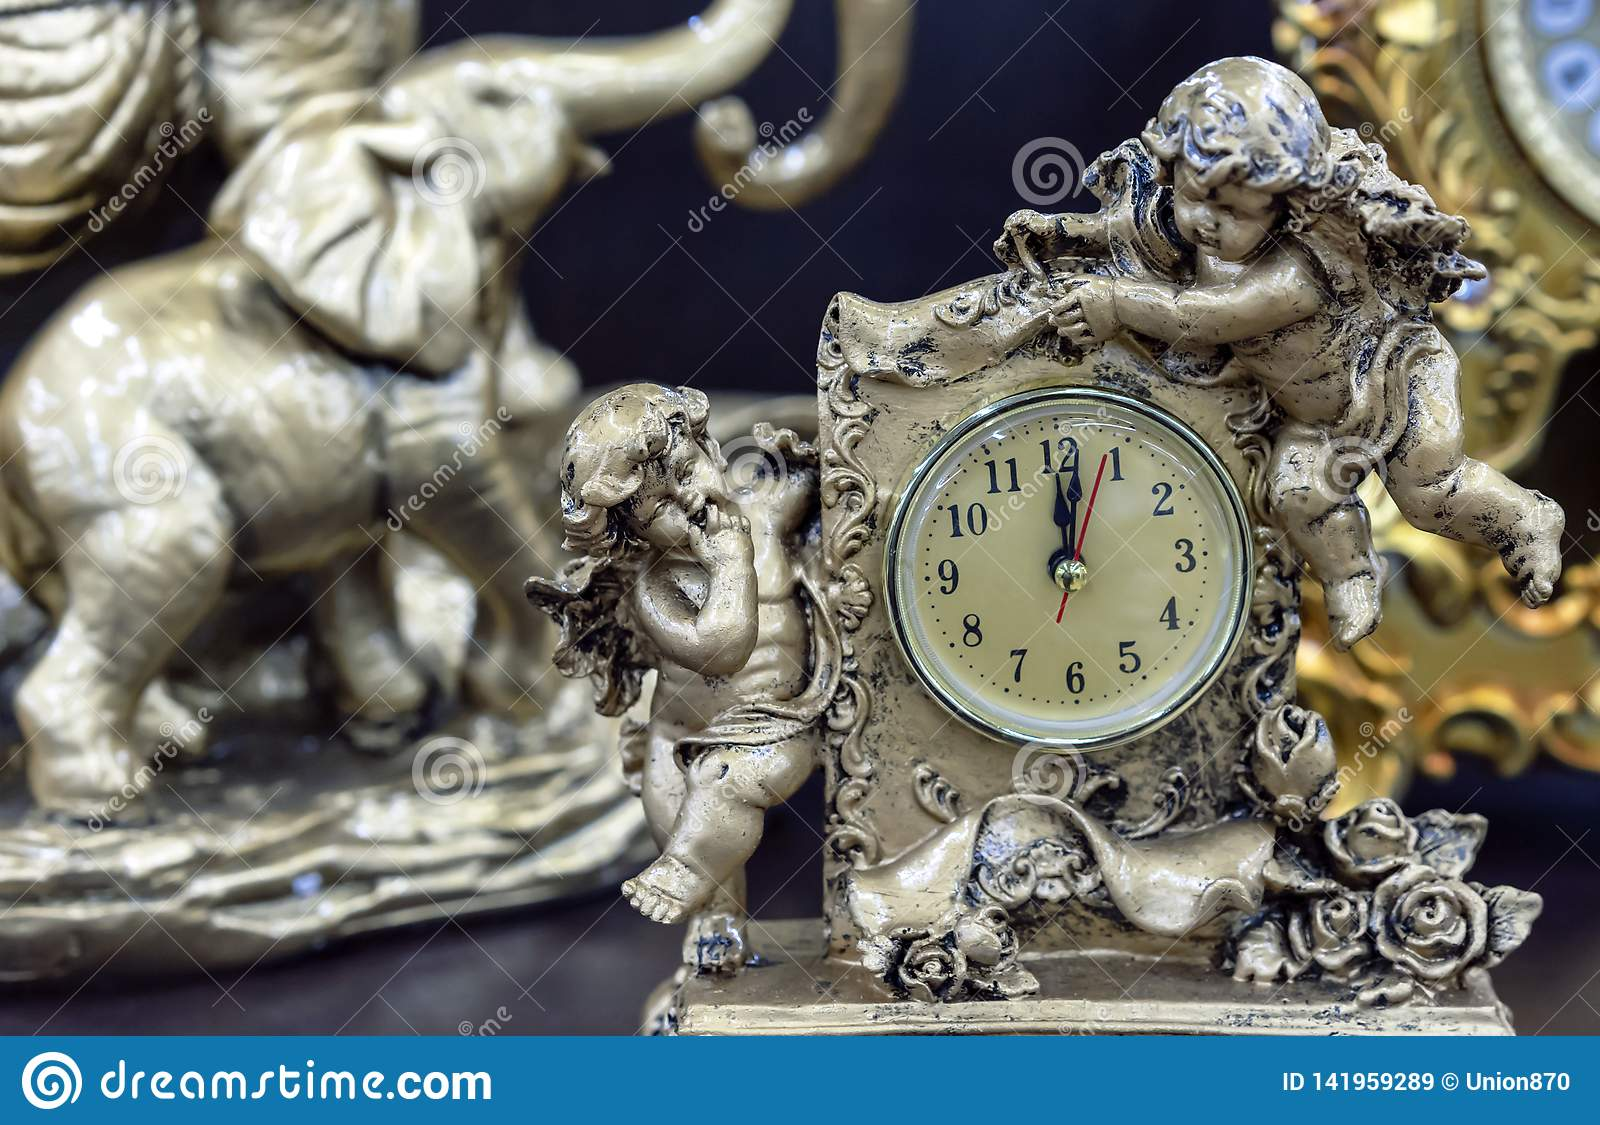 Bronze table clock with angels on a wooden table